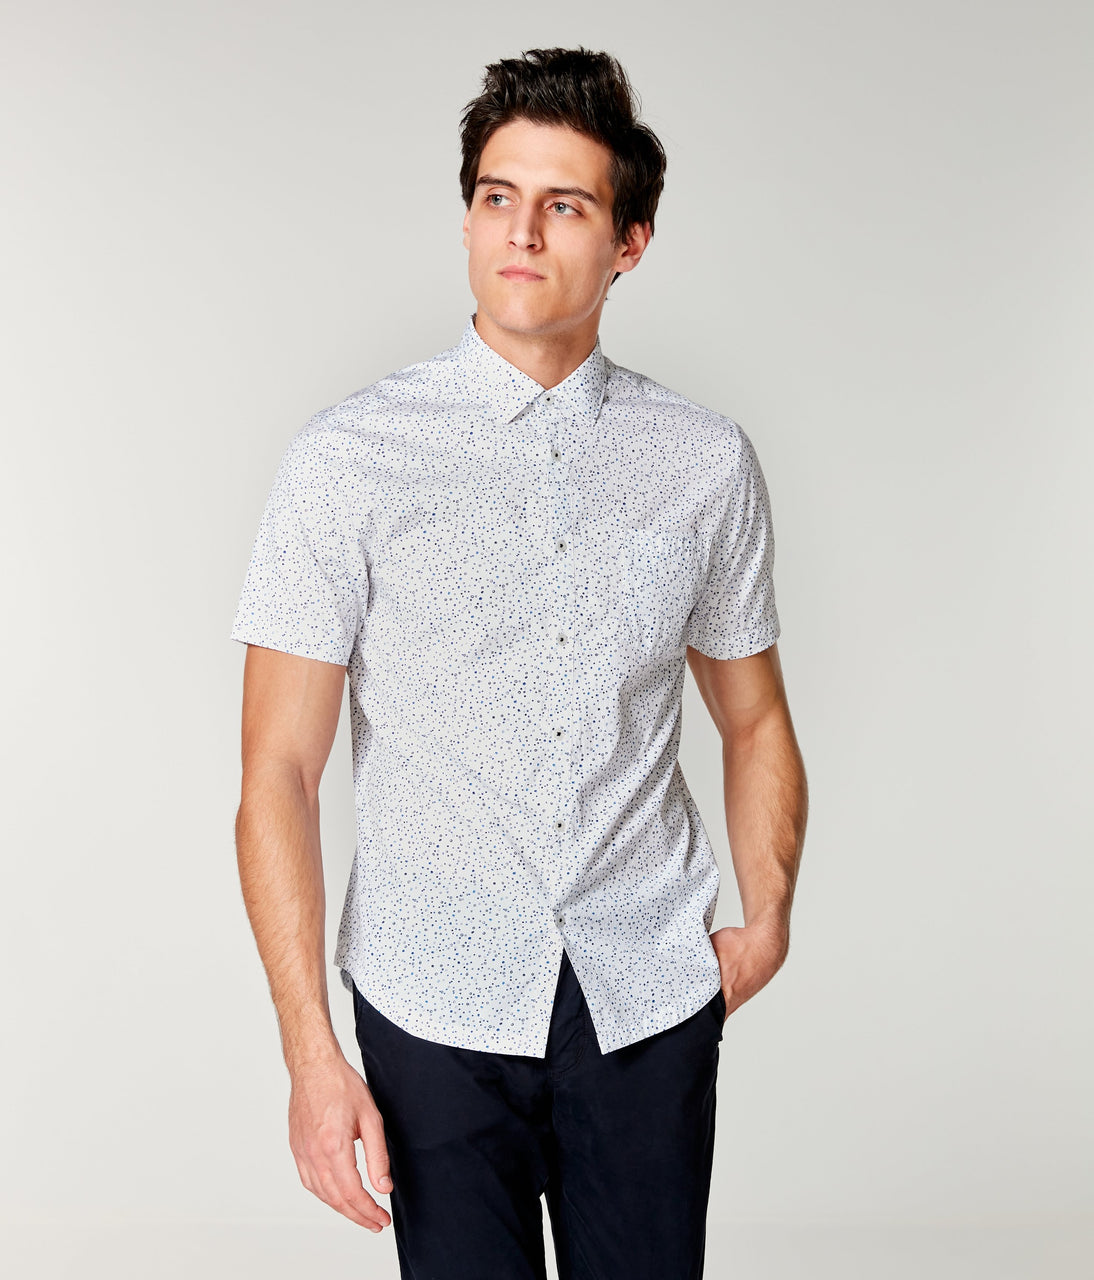 Woven On-Point Shirt - White Organic Micro Dot - Good Man Brand - On-Point Print Shirt Short Sleeve - White Organic Micro Dot